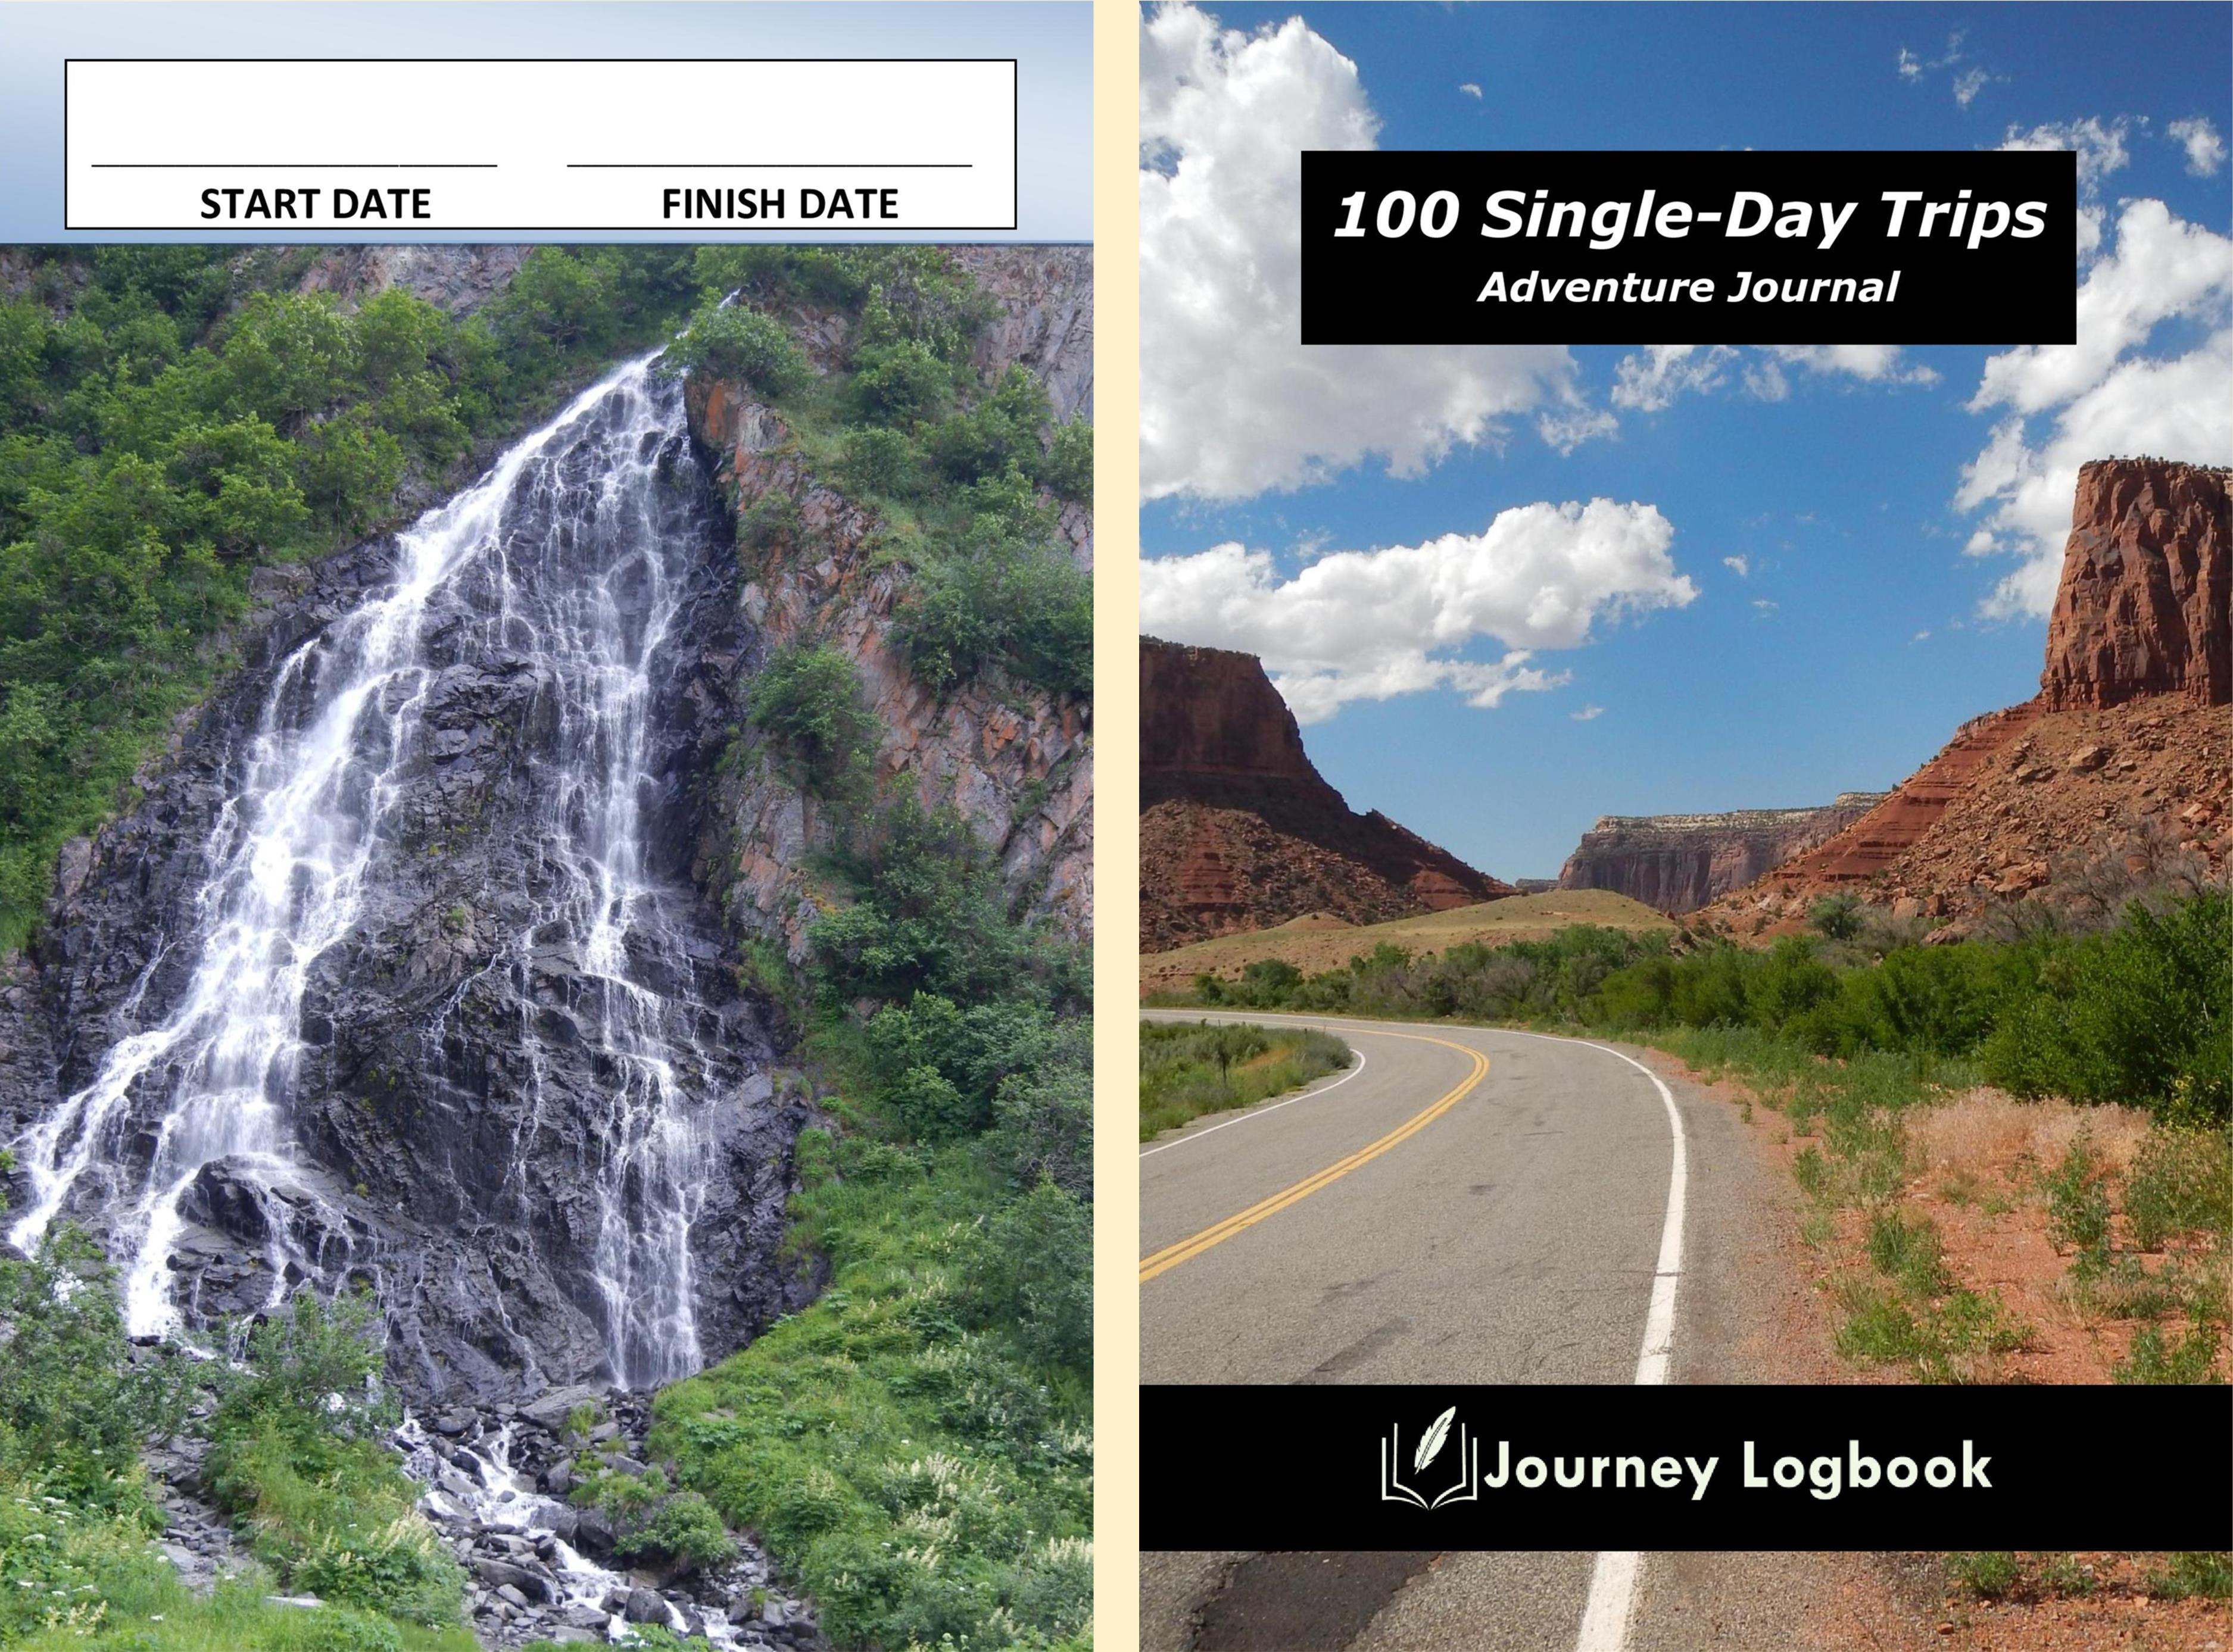 100 Single-Day Trips Adventure Journal cover image